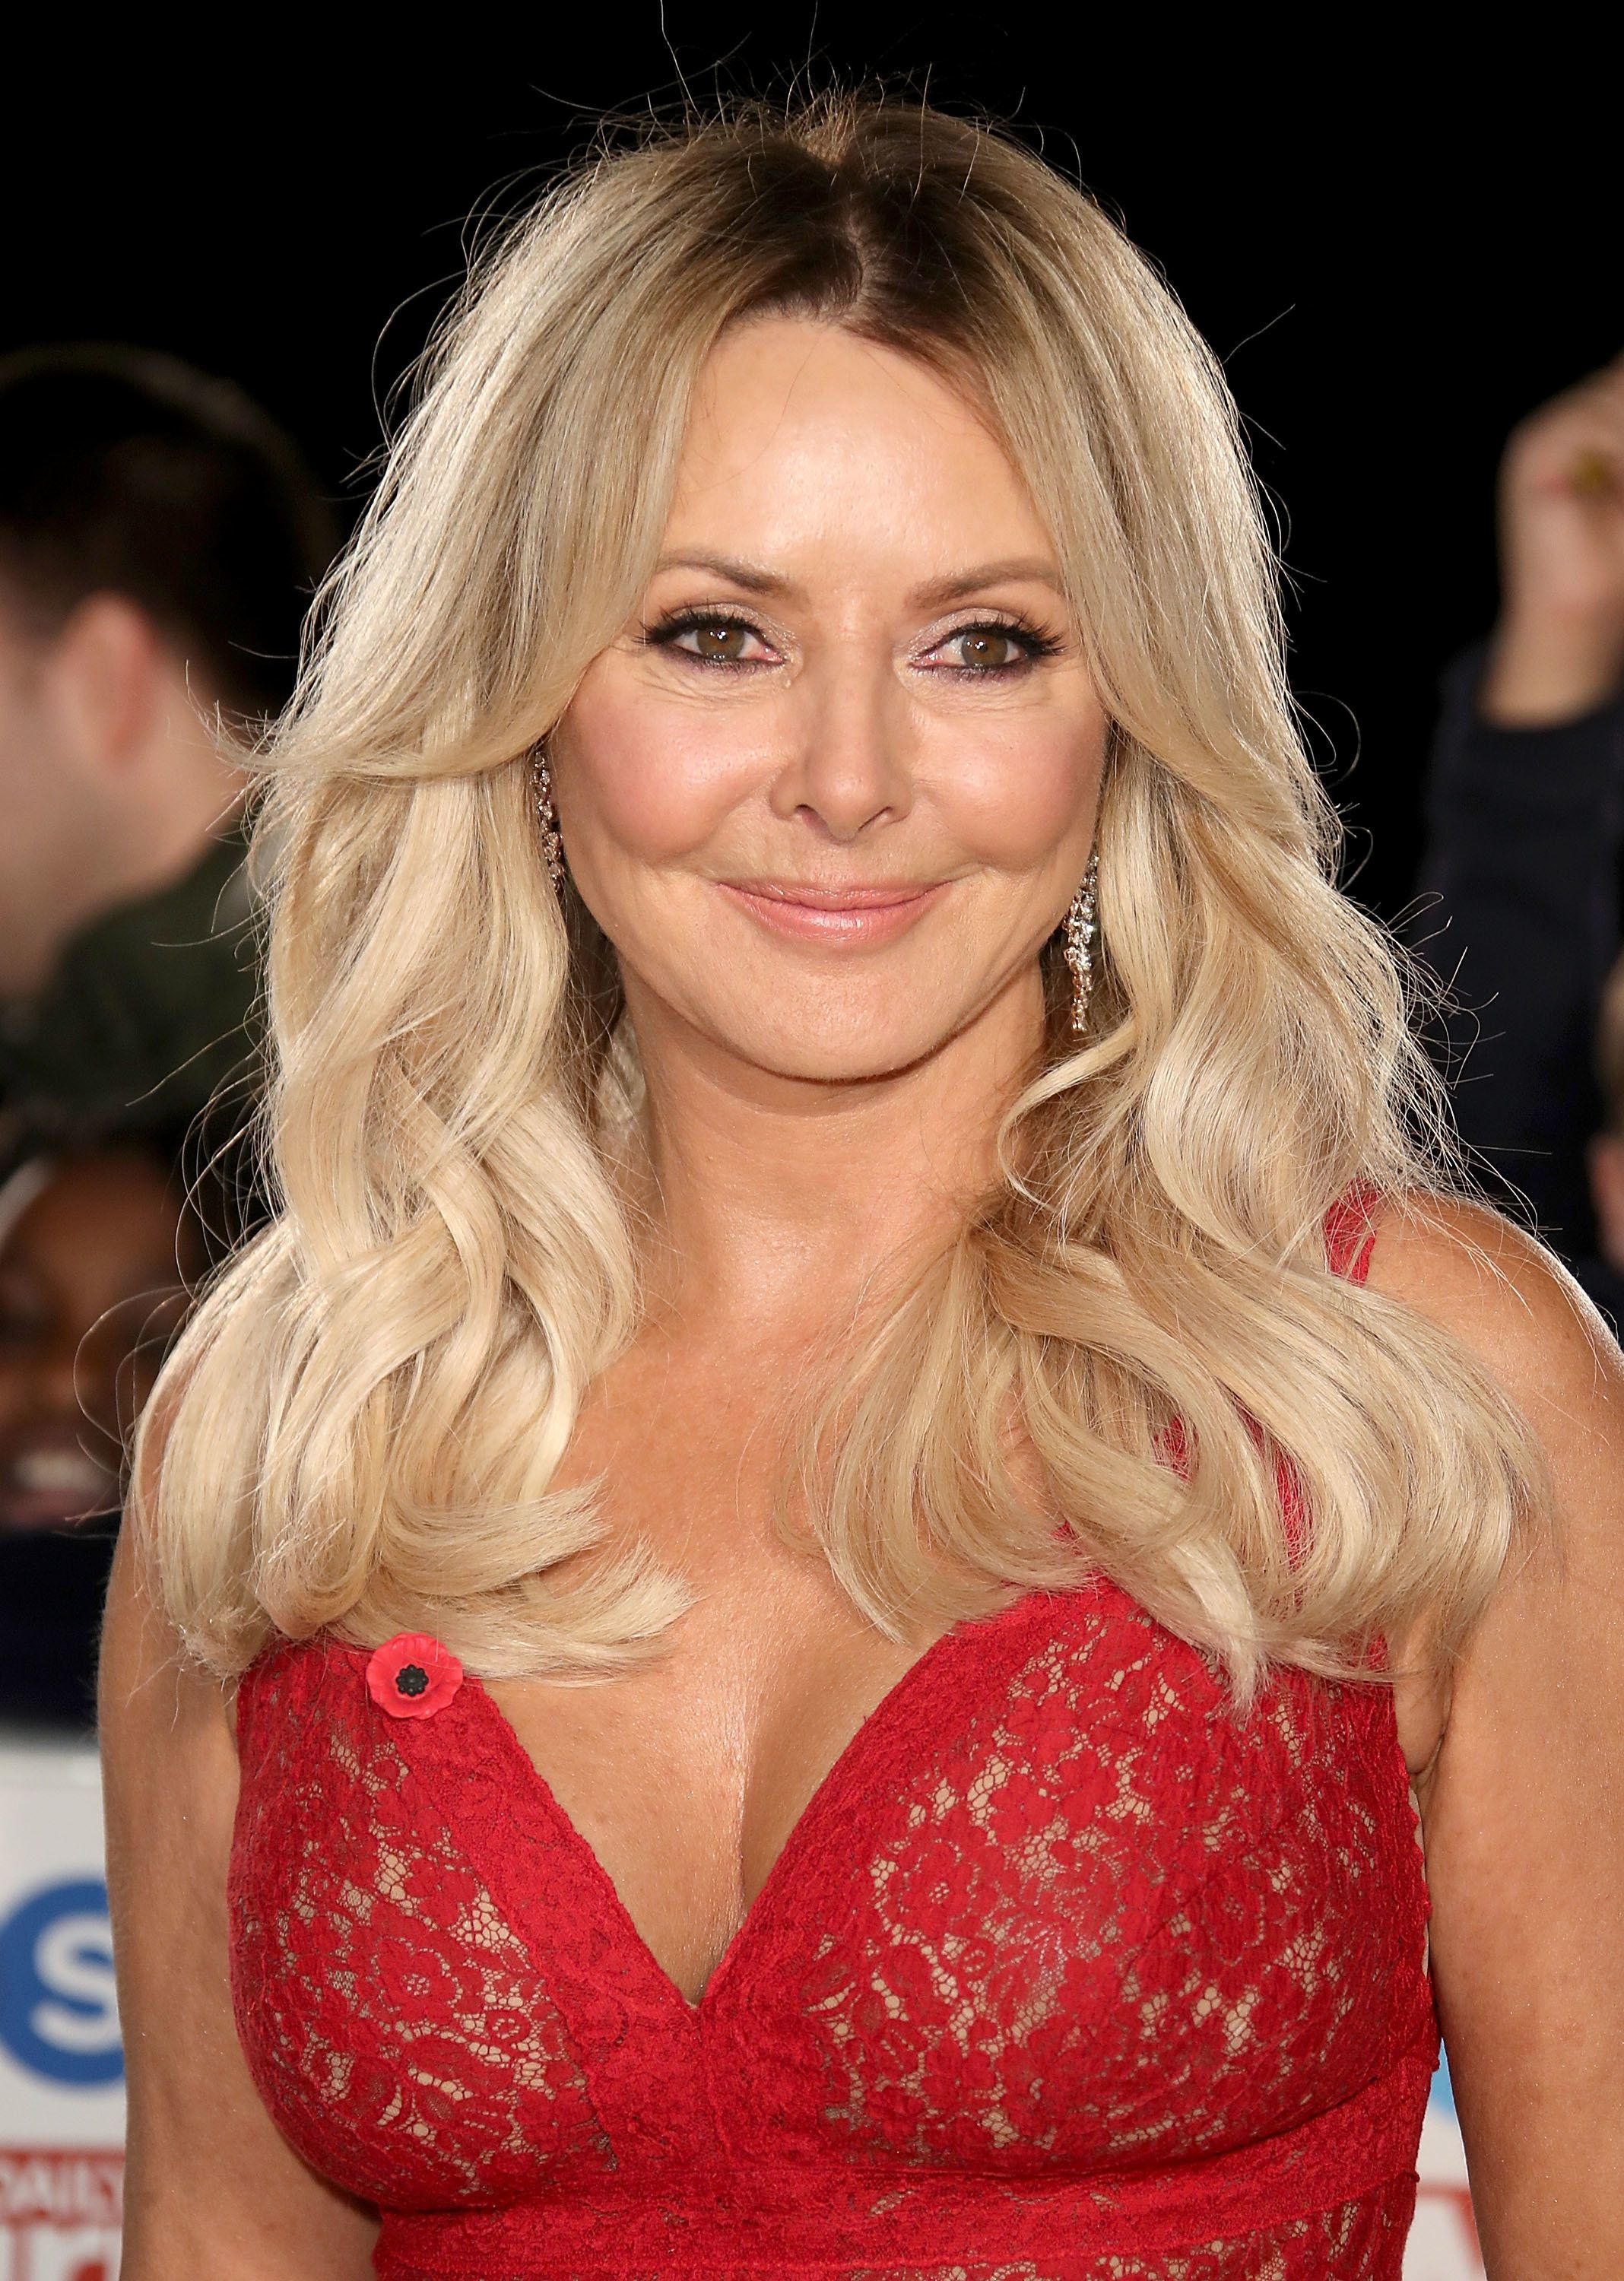 Carol Vorderman Dishes On Her Wild Side, After Winding Up On A Bed On Rag'N'Bone Man's Tour